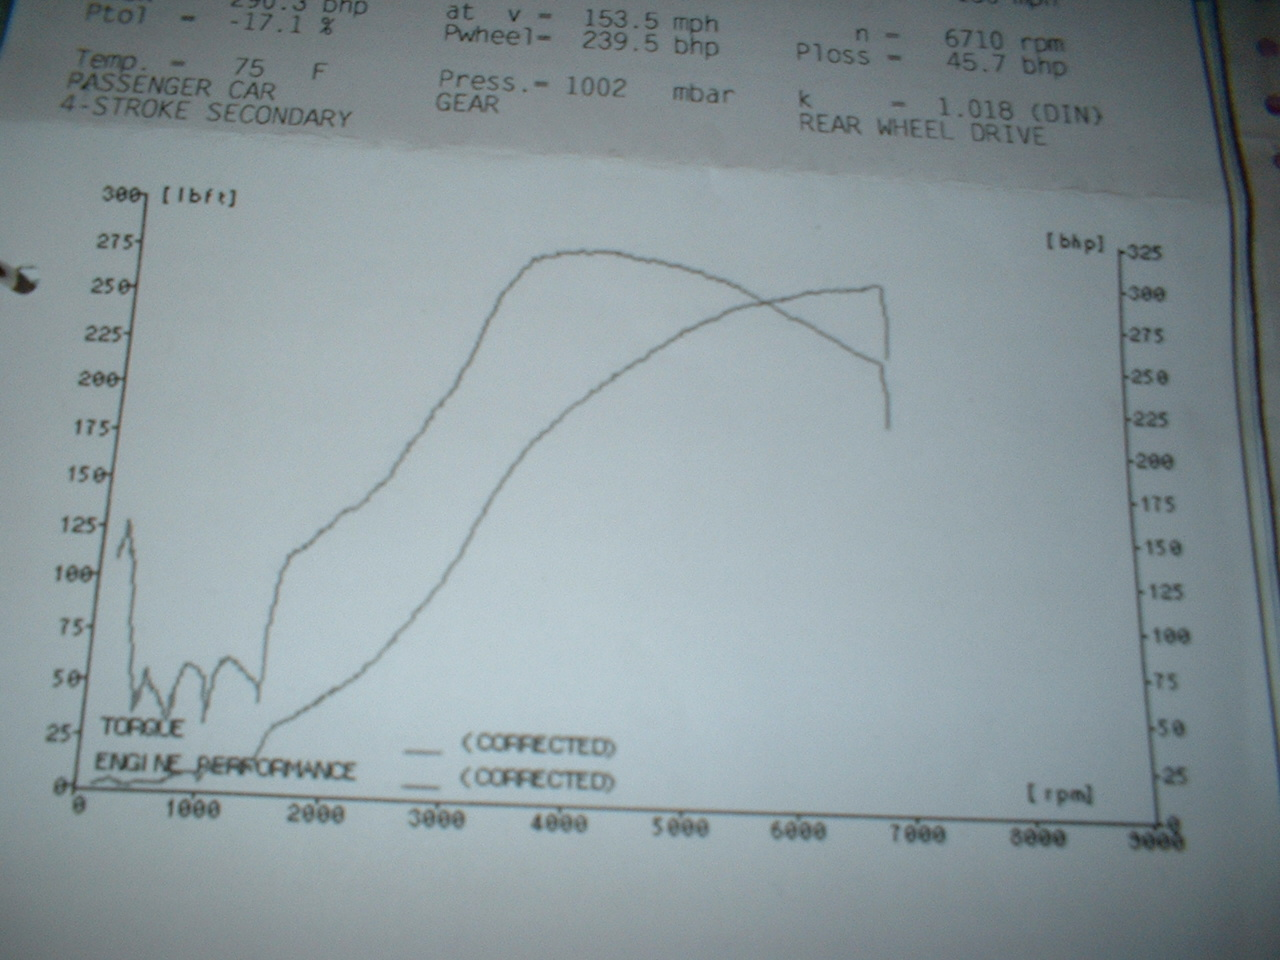 1996 Nissan 200SX S14A Dyno Results Graph